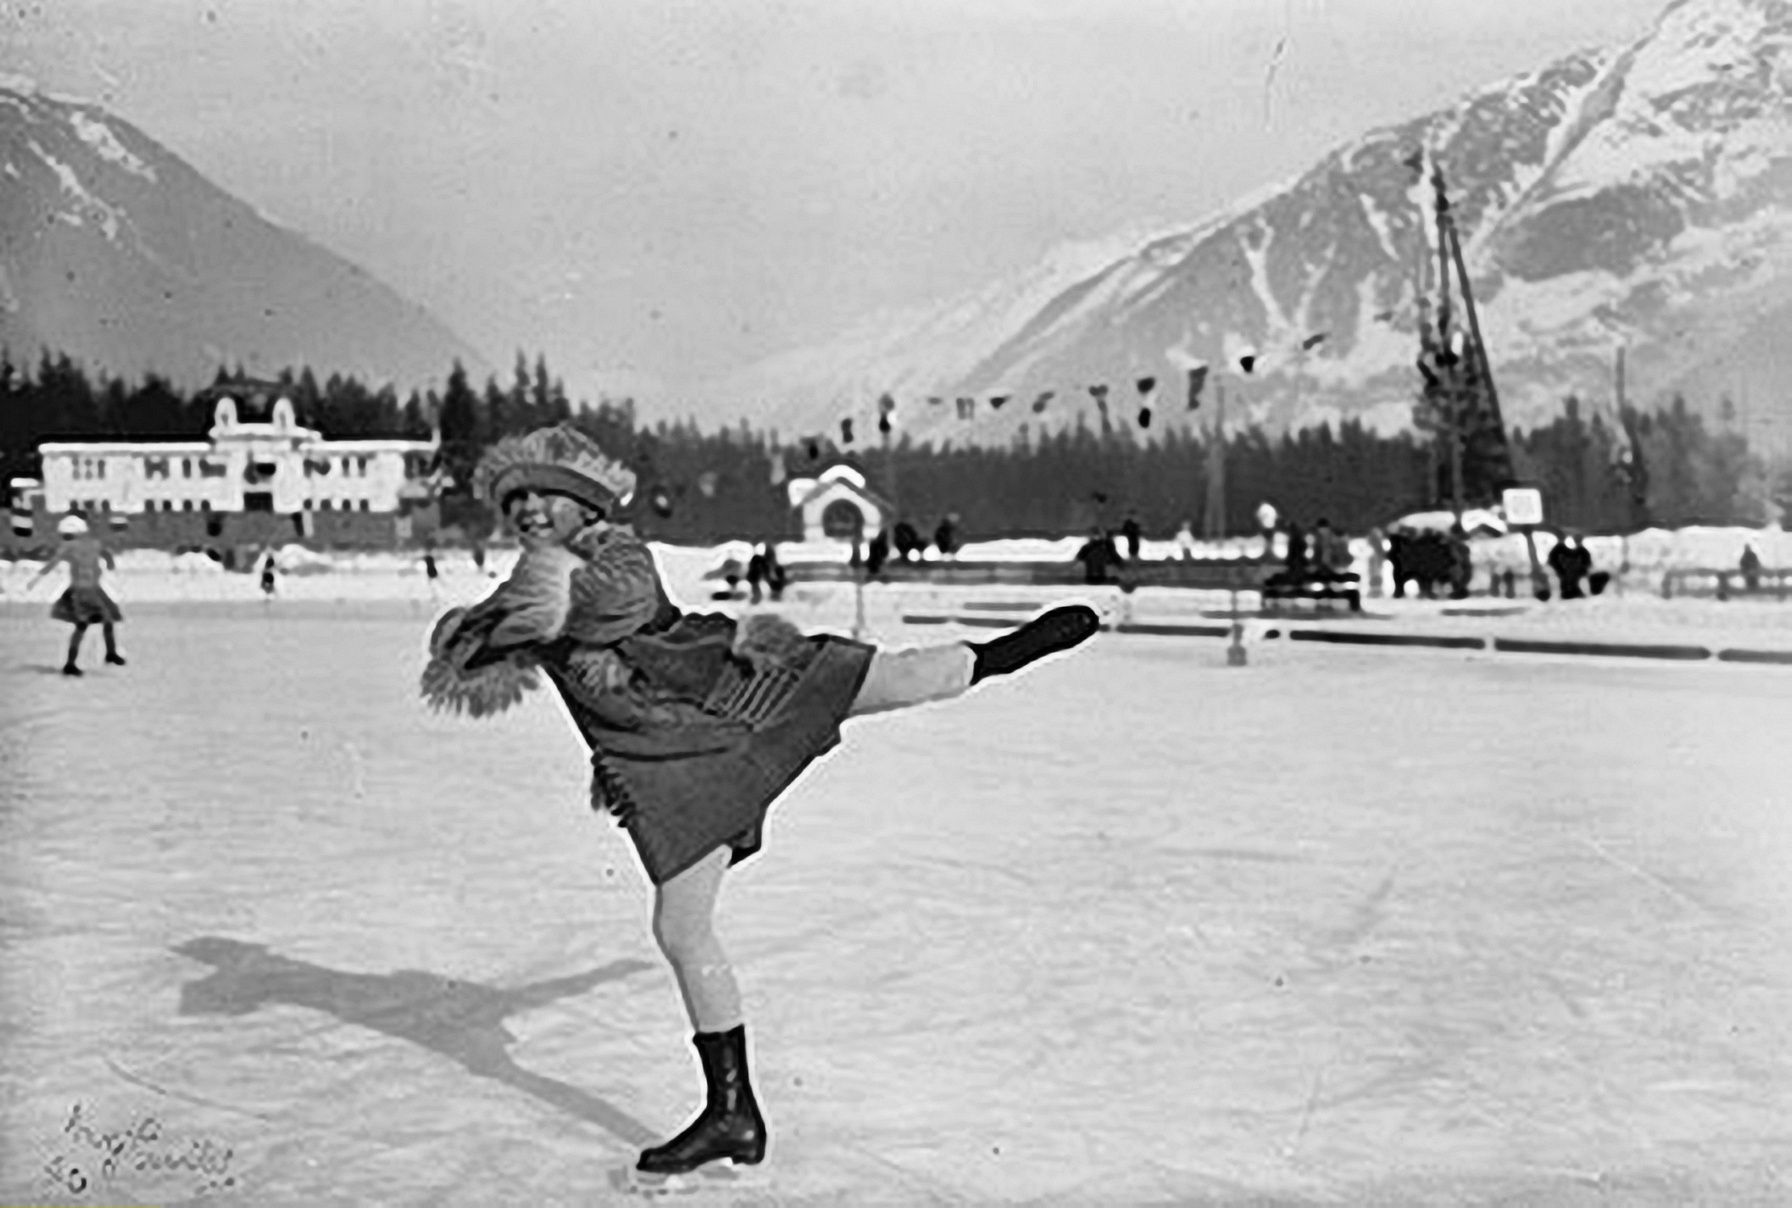 Athlete and figure skater Sonja Henie of Norway at the first Winter Olympics in Chamonix, 1924